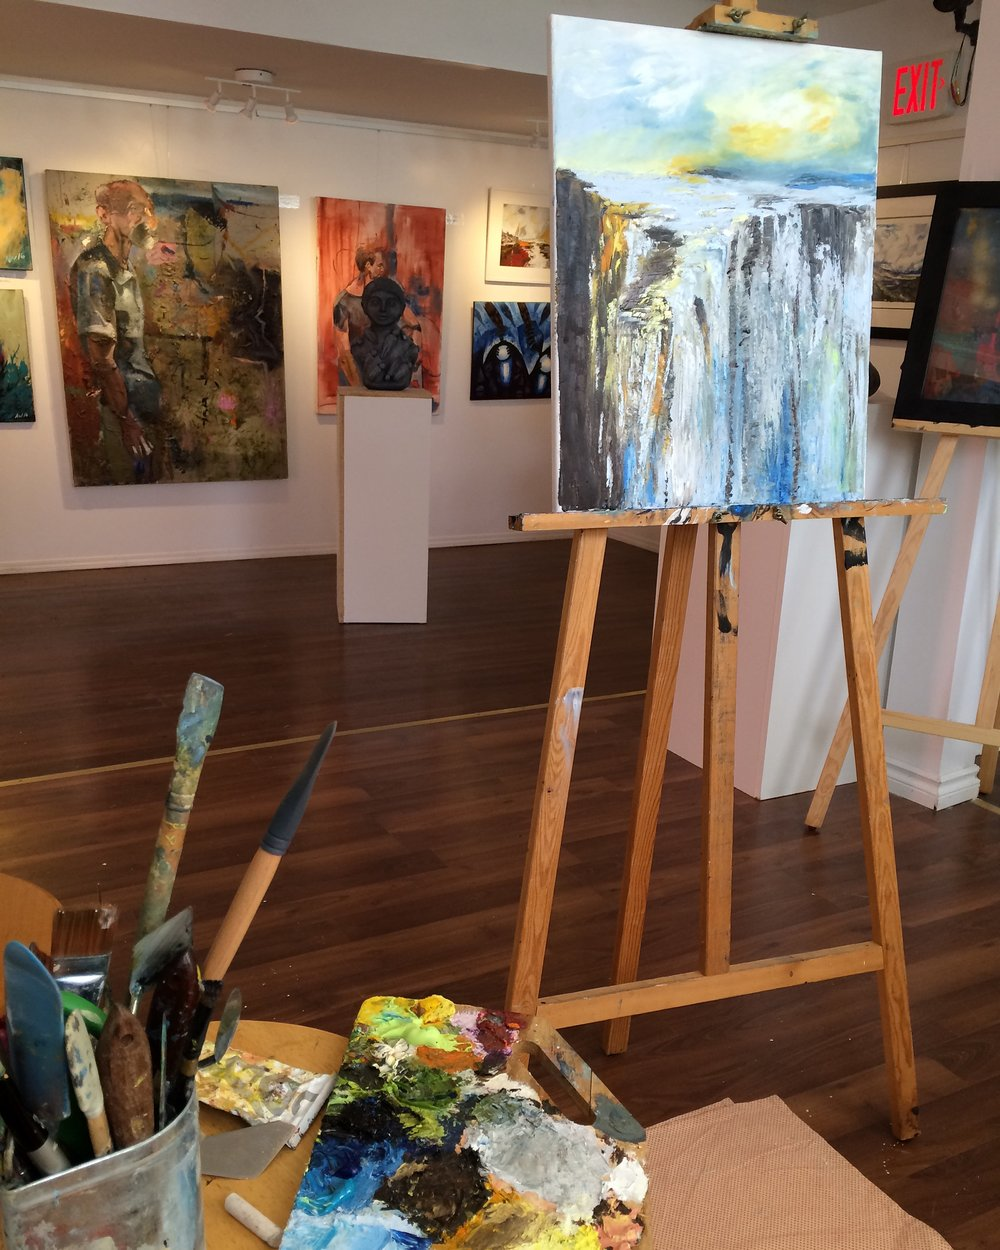 Live Art Demonstrations - Everyday from Tuesday to Sunday, a resident artist demonstrates an art piece they are completing.